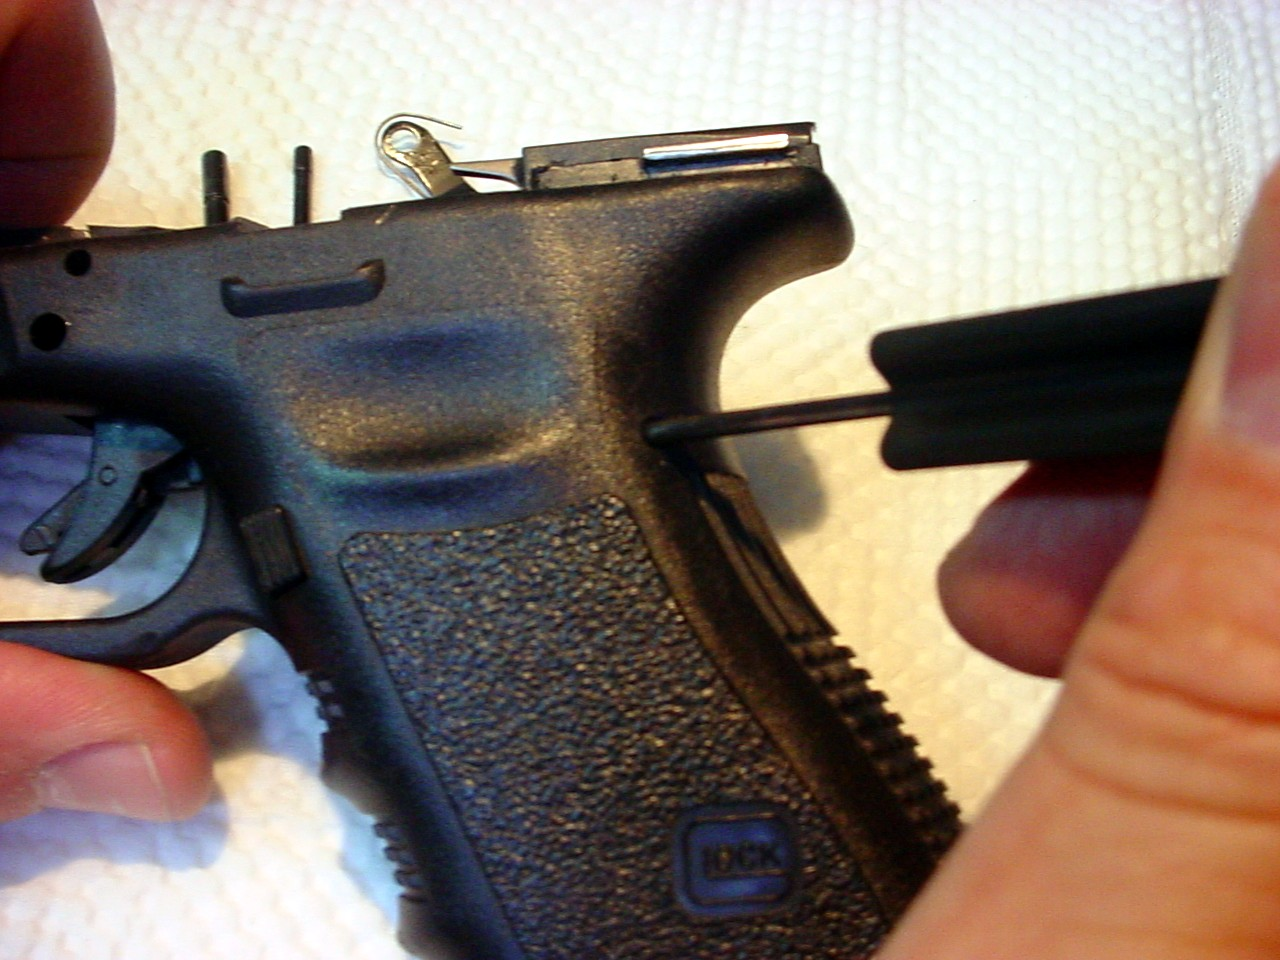 4-removal-trigger-housing-pin.jpg